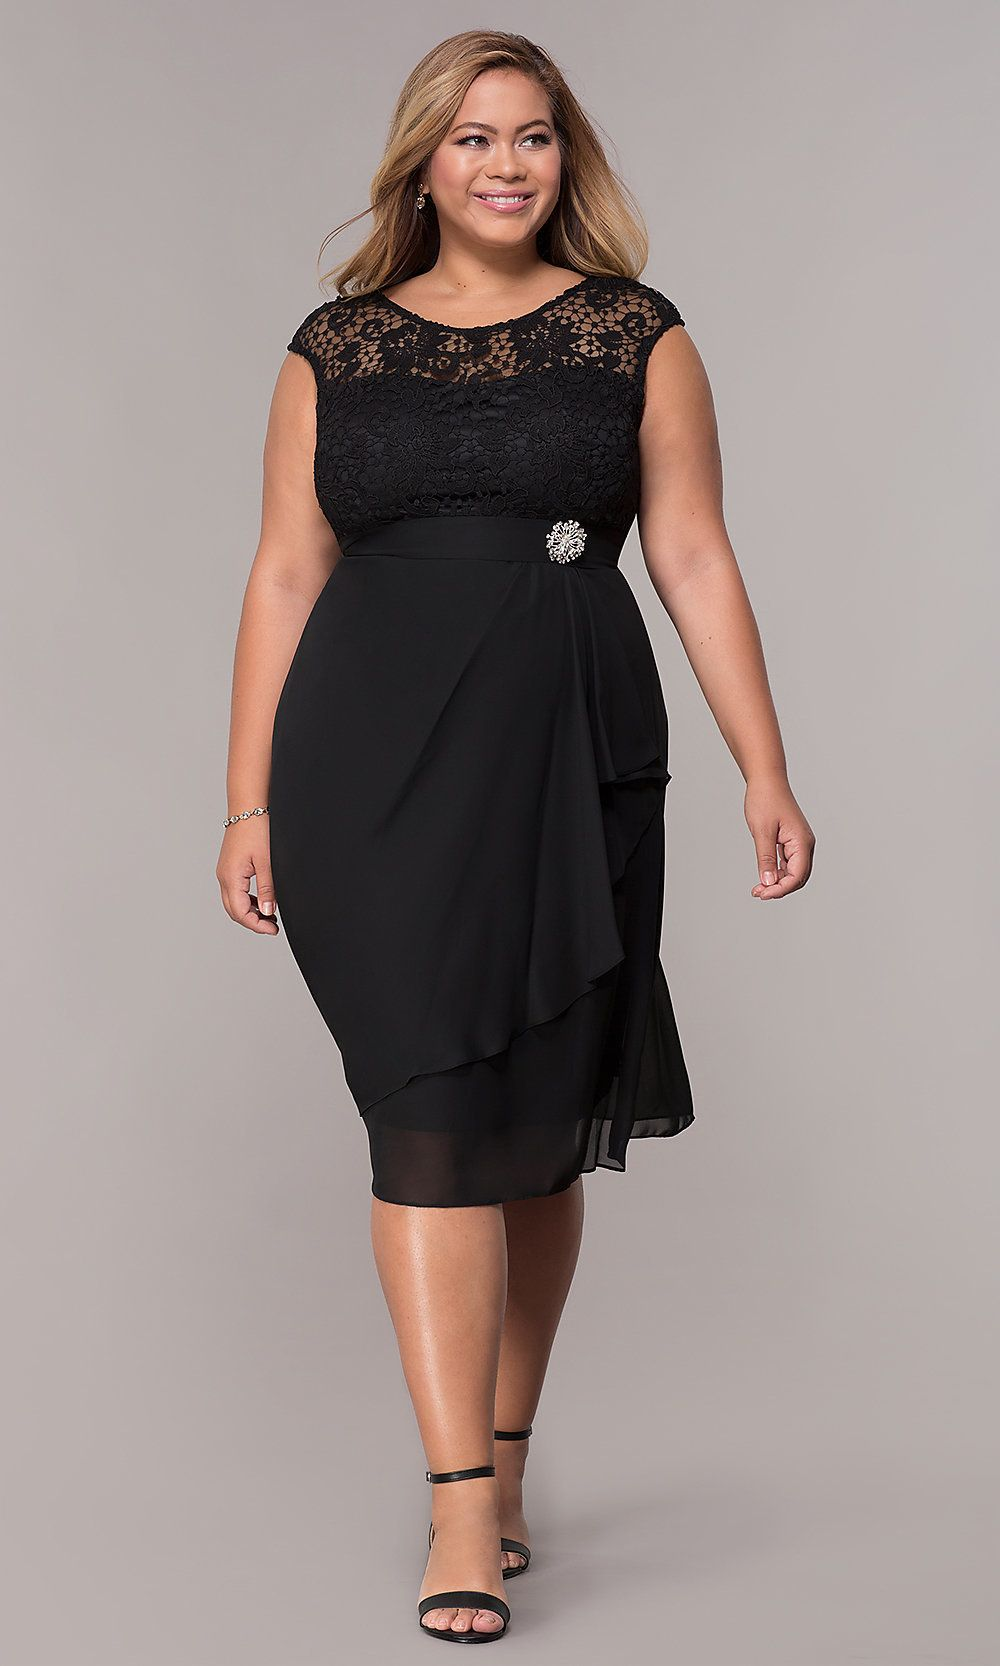 Plus Size Evening Dress Nordstrom | Lixnet AG